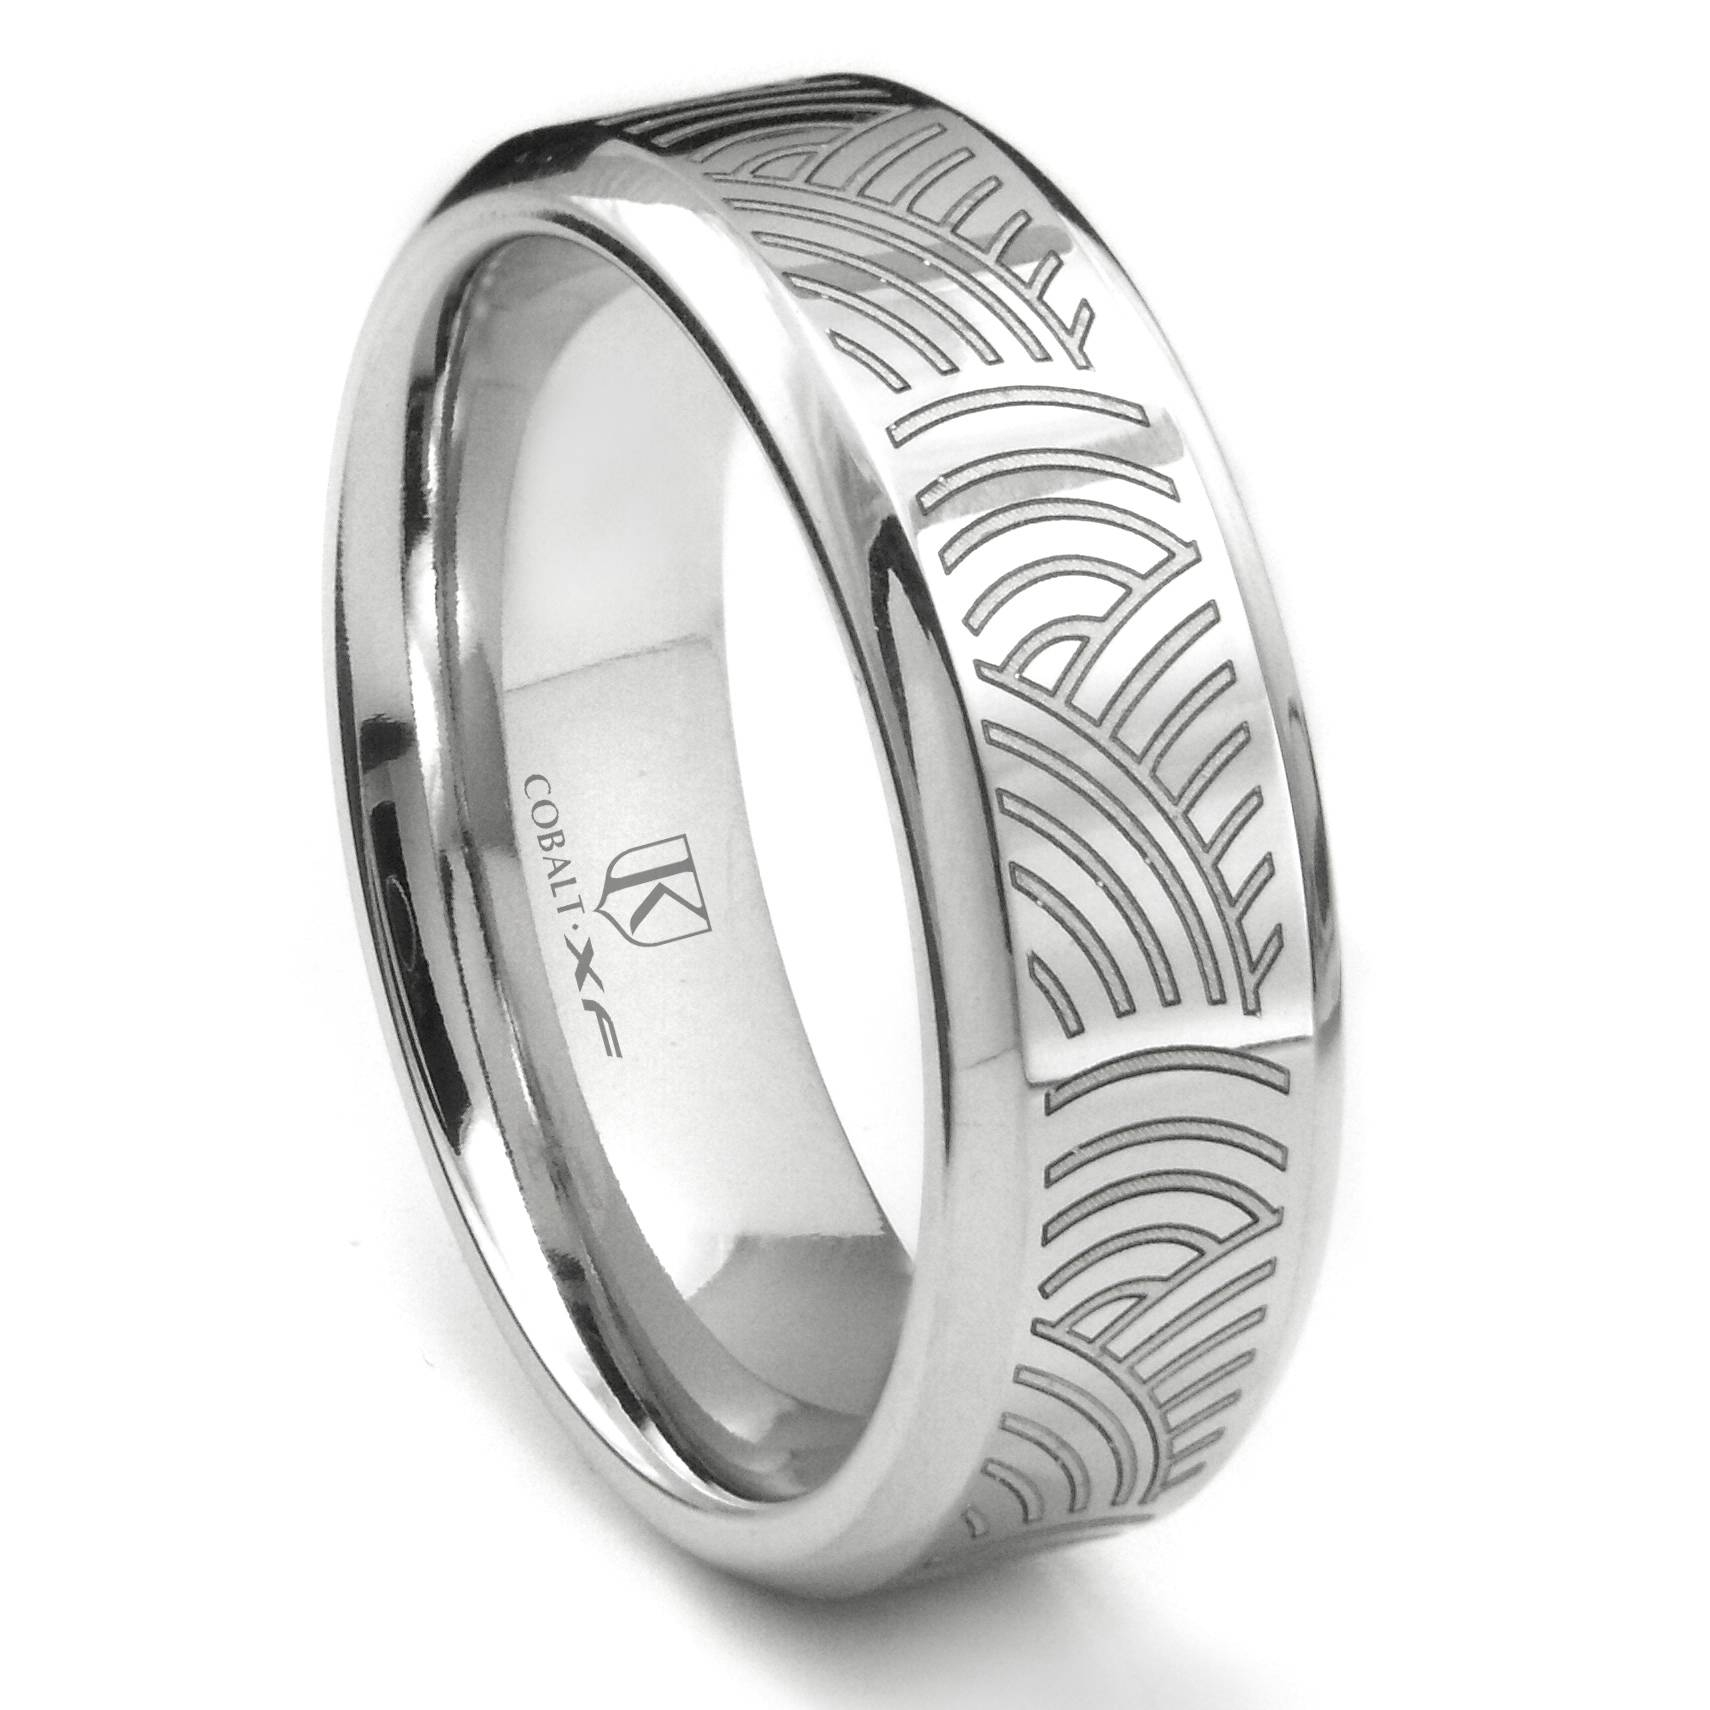 Cobalt Xf Chrome Laser Engraved Wedding Band Ring W/ Ripple Designs Within Engrave Wedding Bands (View 4 of 15)